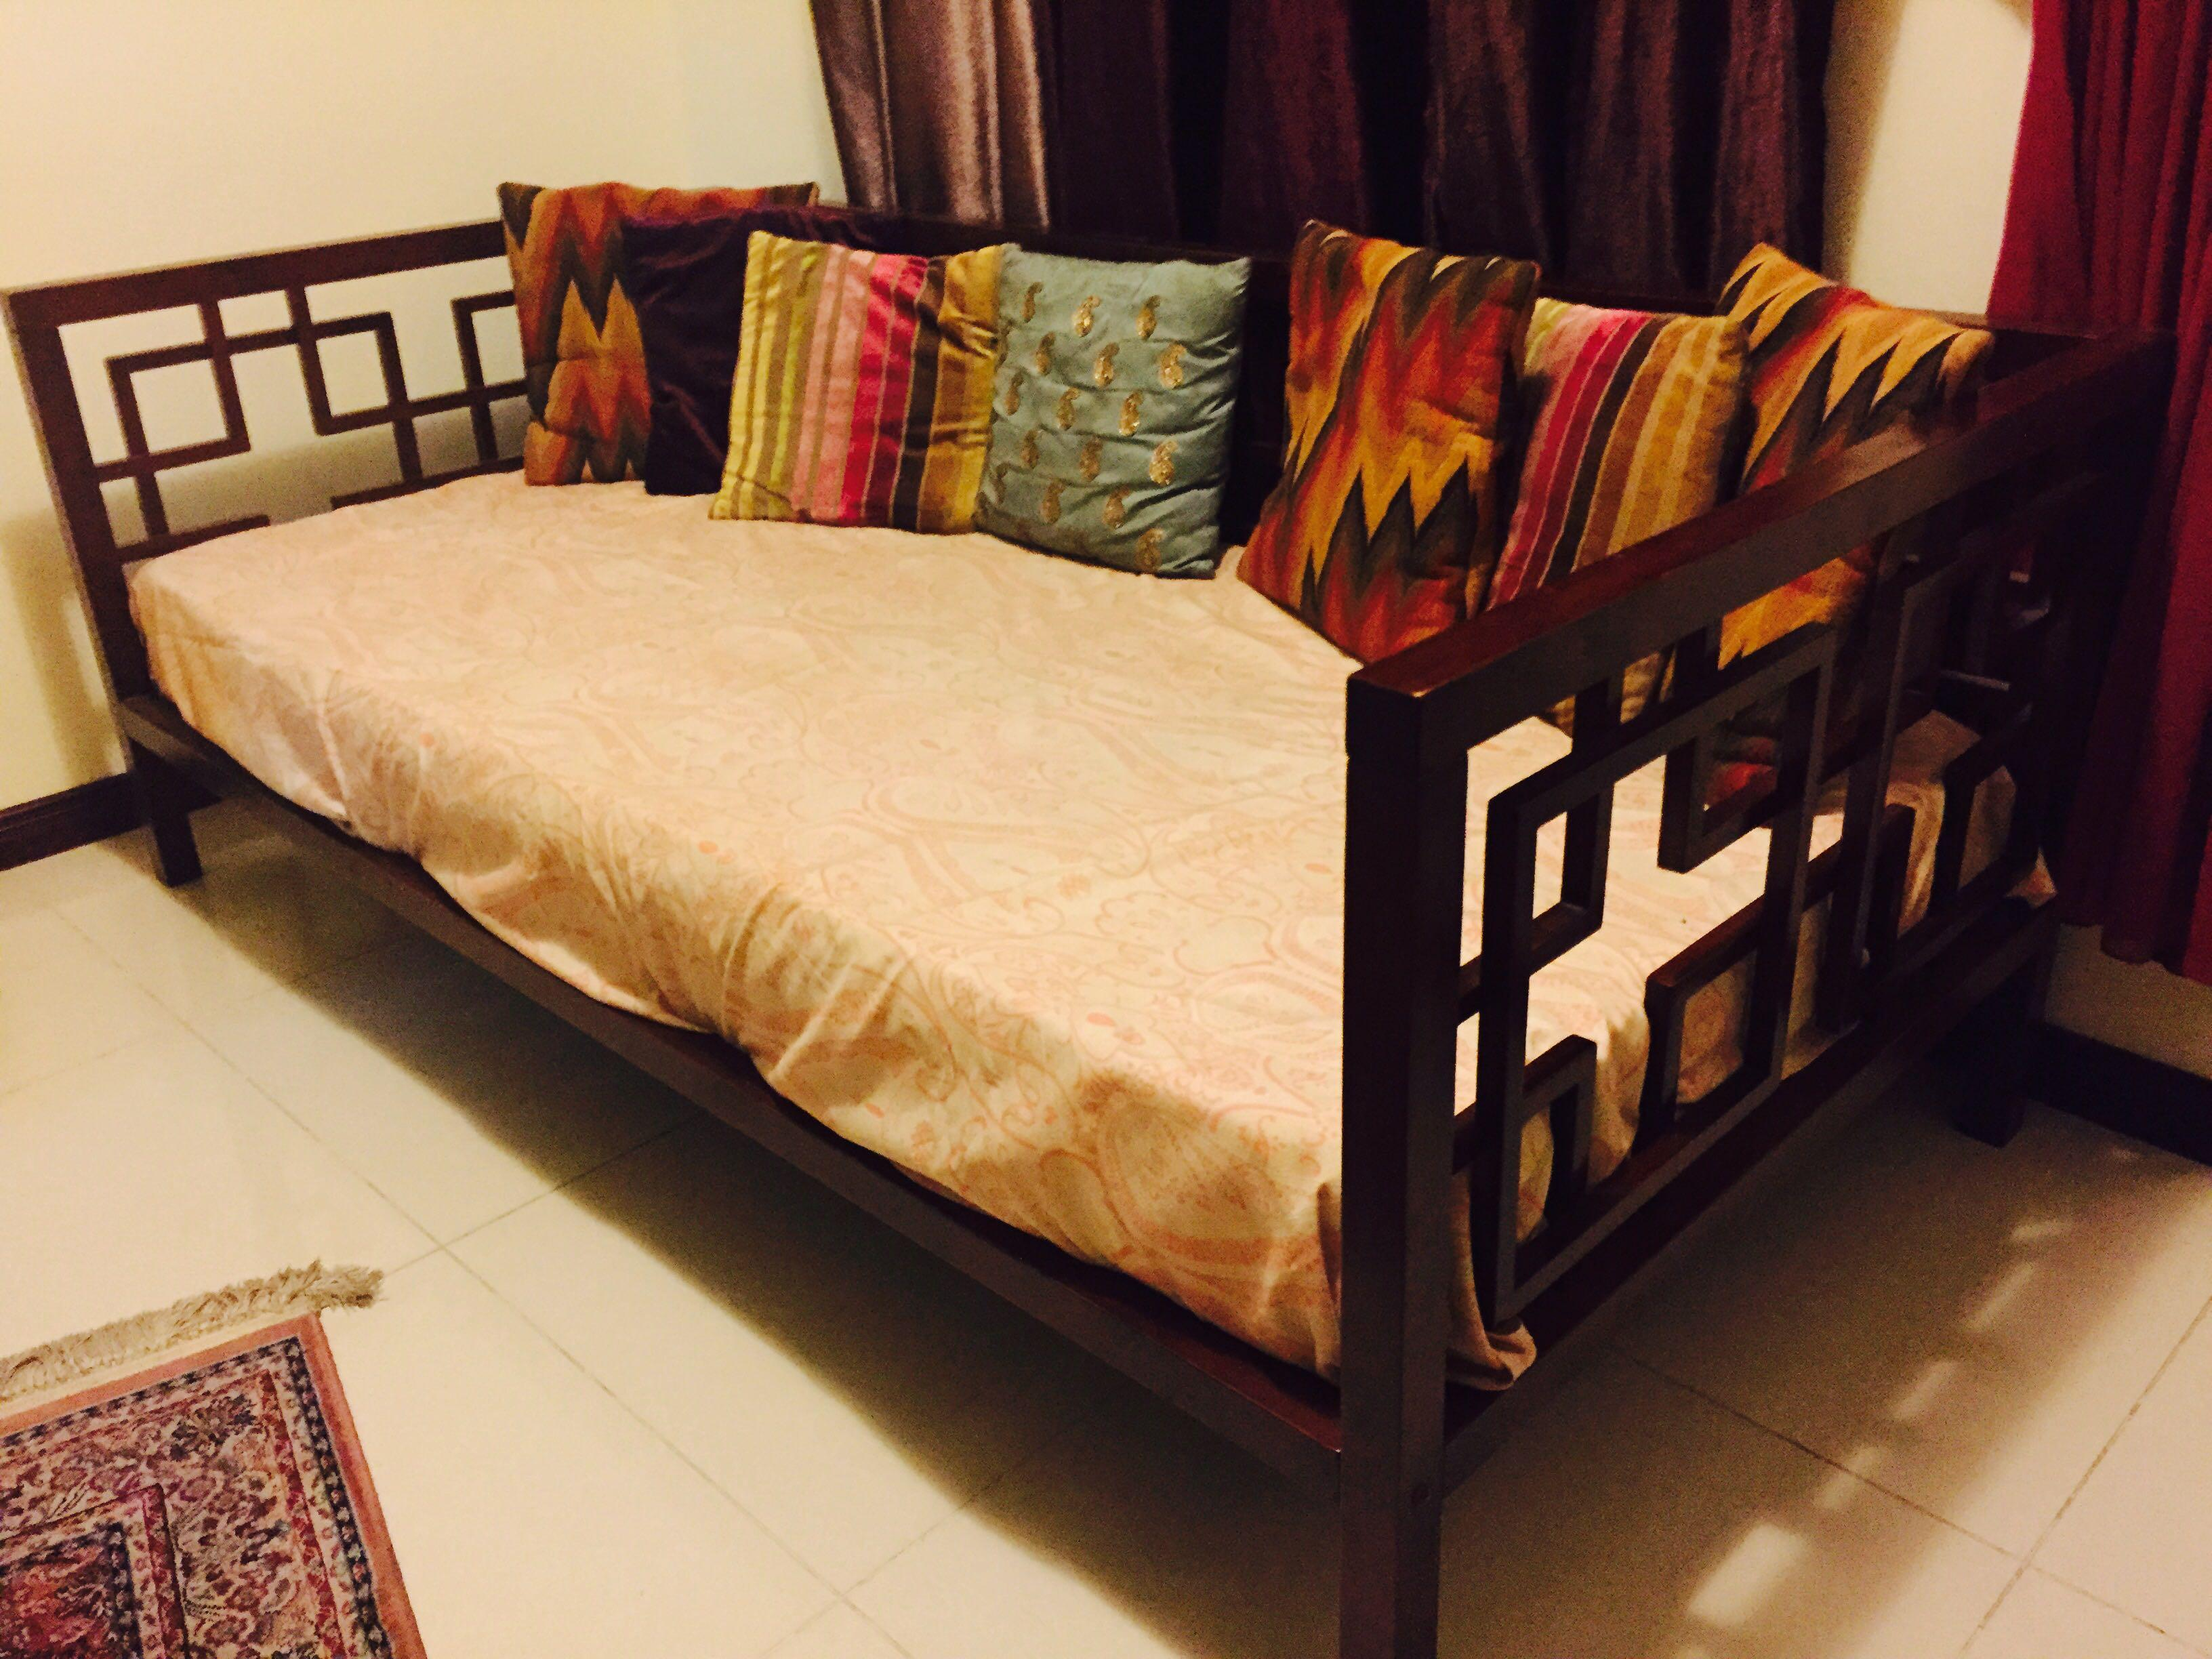 Le Information Bed Like Sofa 90 X 180 From Home